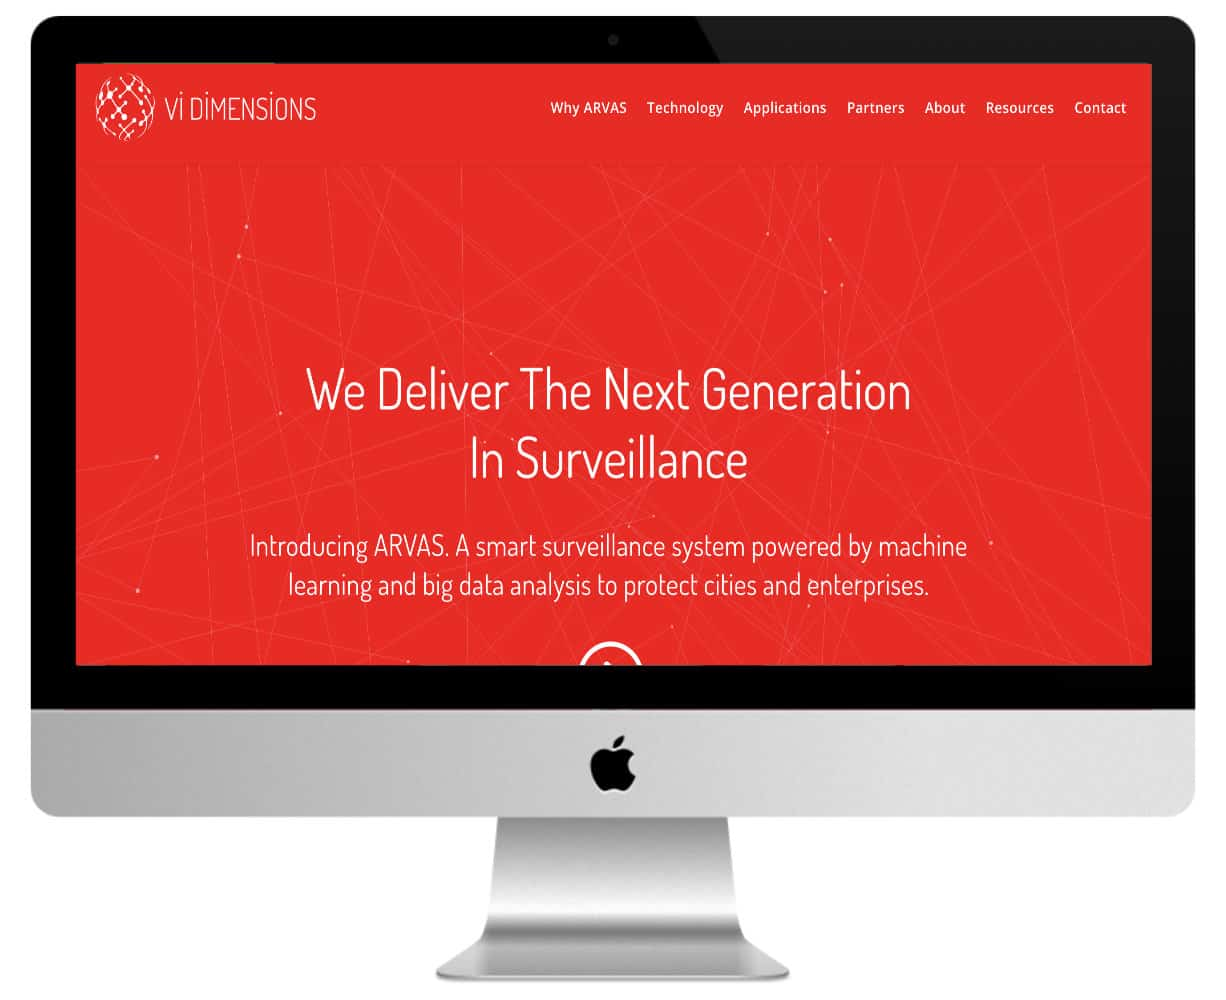 siteweb couleur rouge